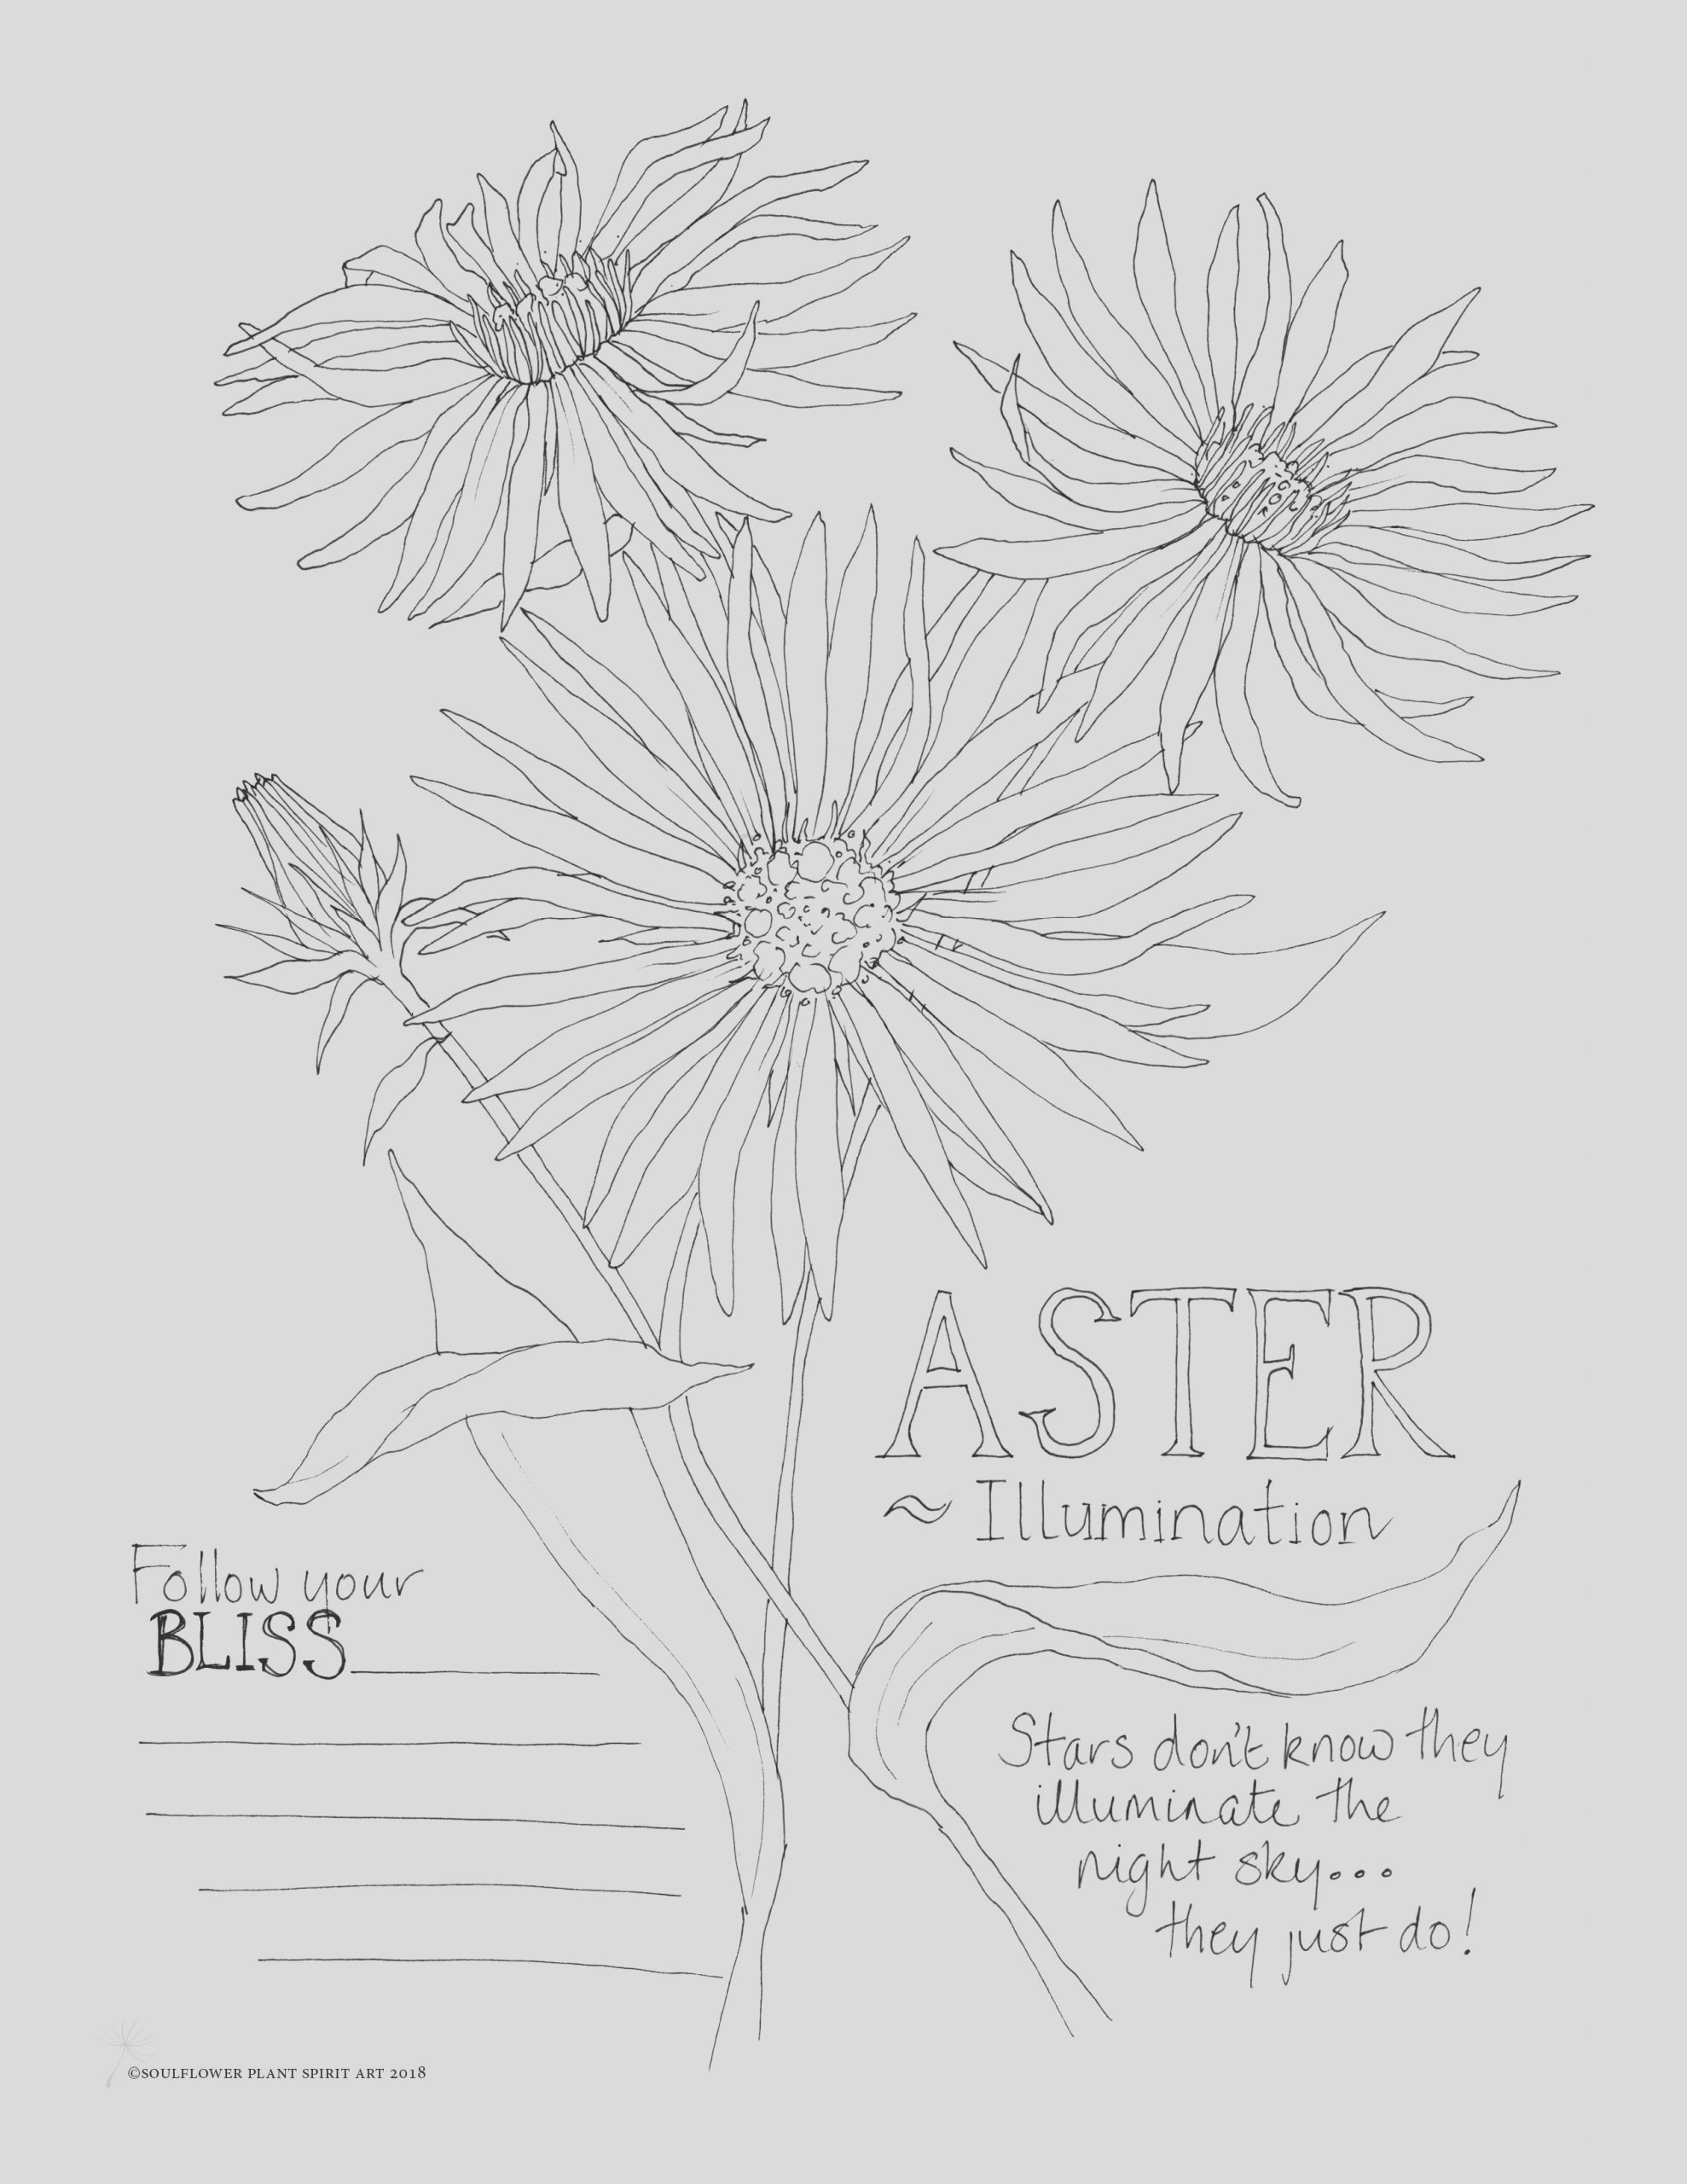 aster illumination coloring page